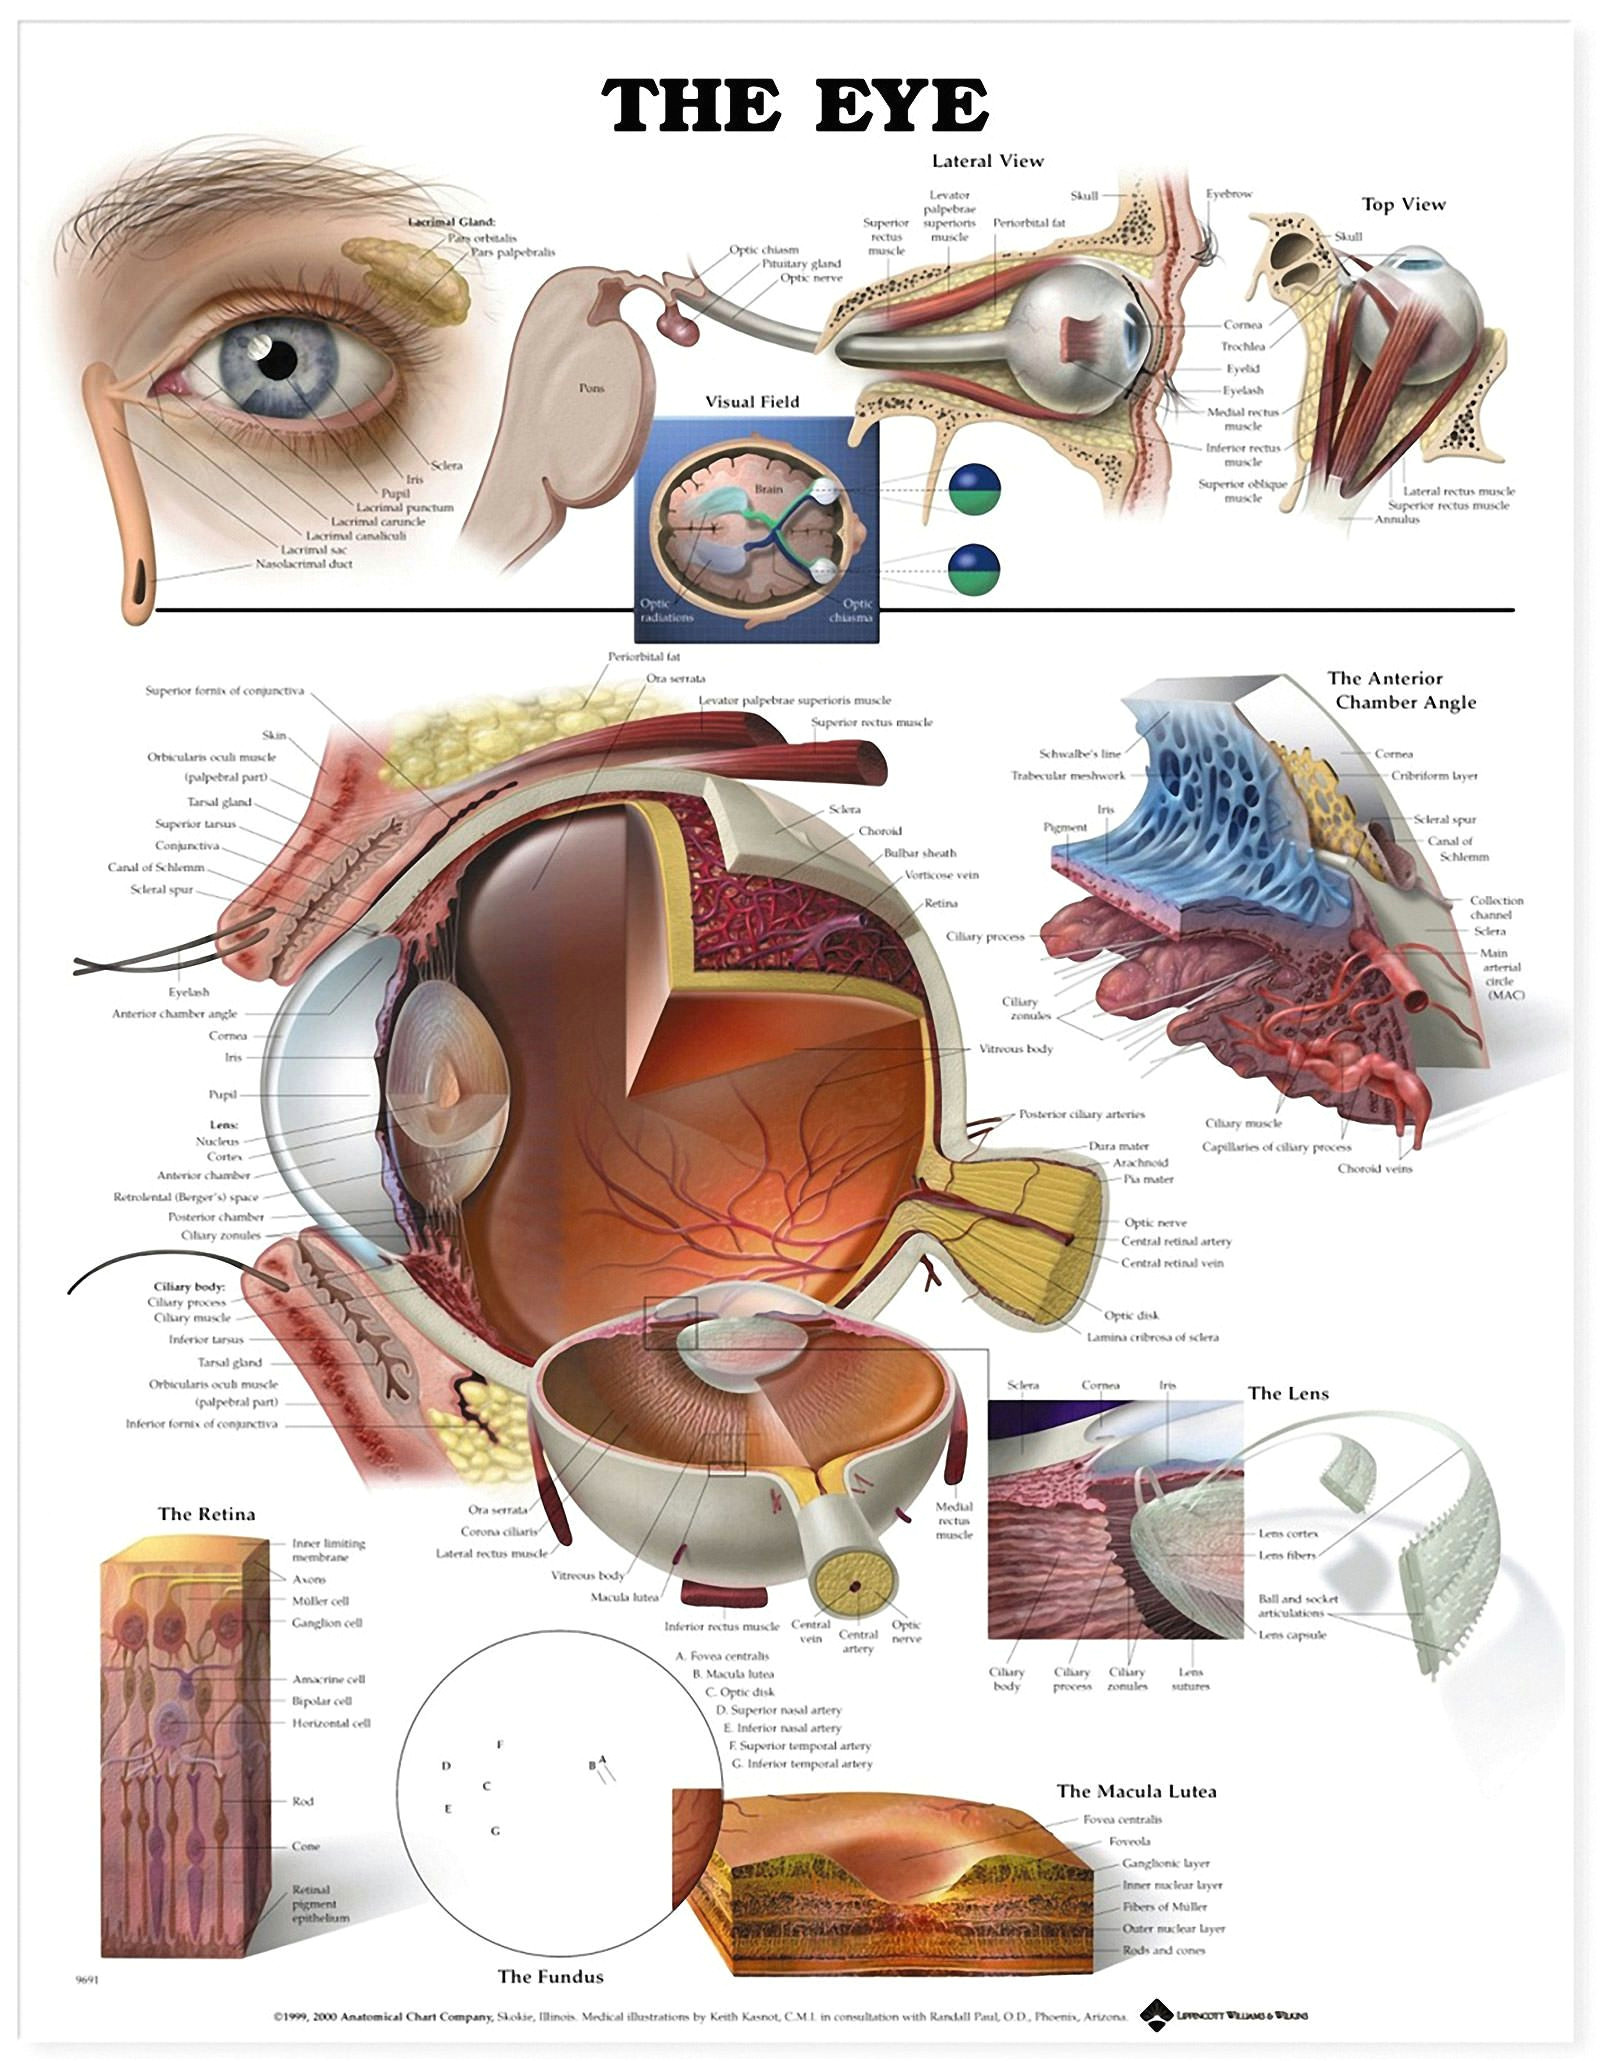 according to research consuming a vitamin d rich diet along with the nutrients methionine and betaine could help lower age related macular degeneration